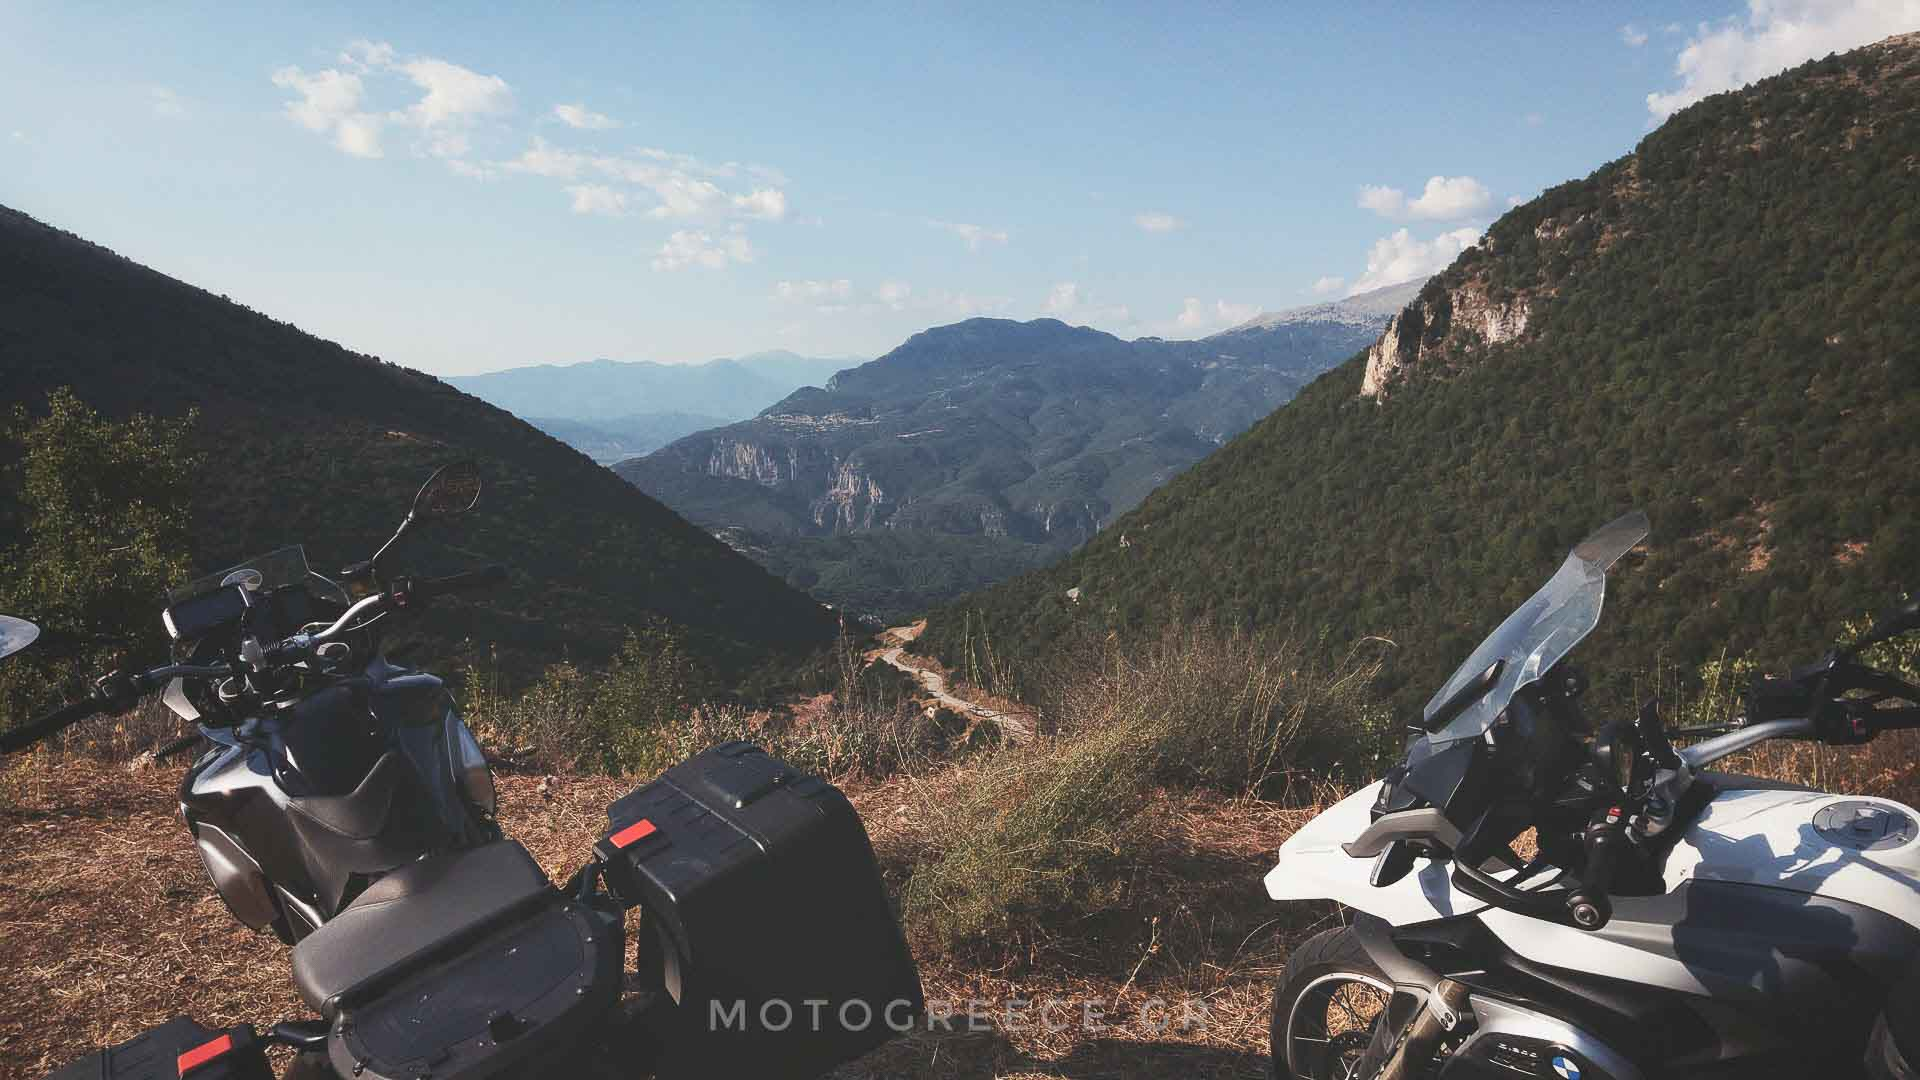 MotoDiscovery's motorcycle tour of Greece